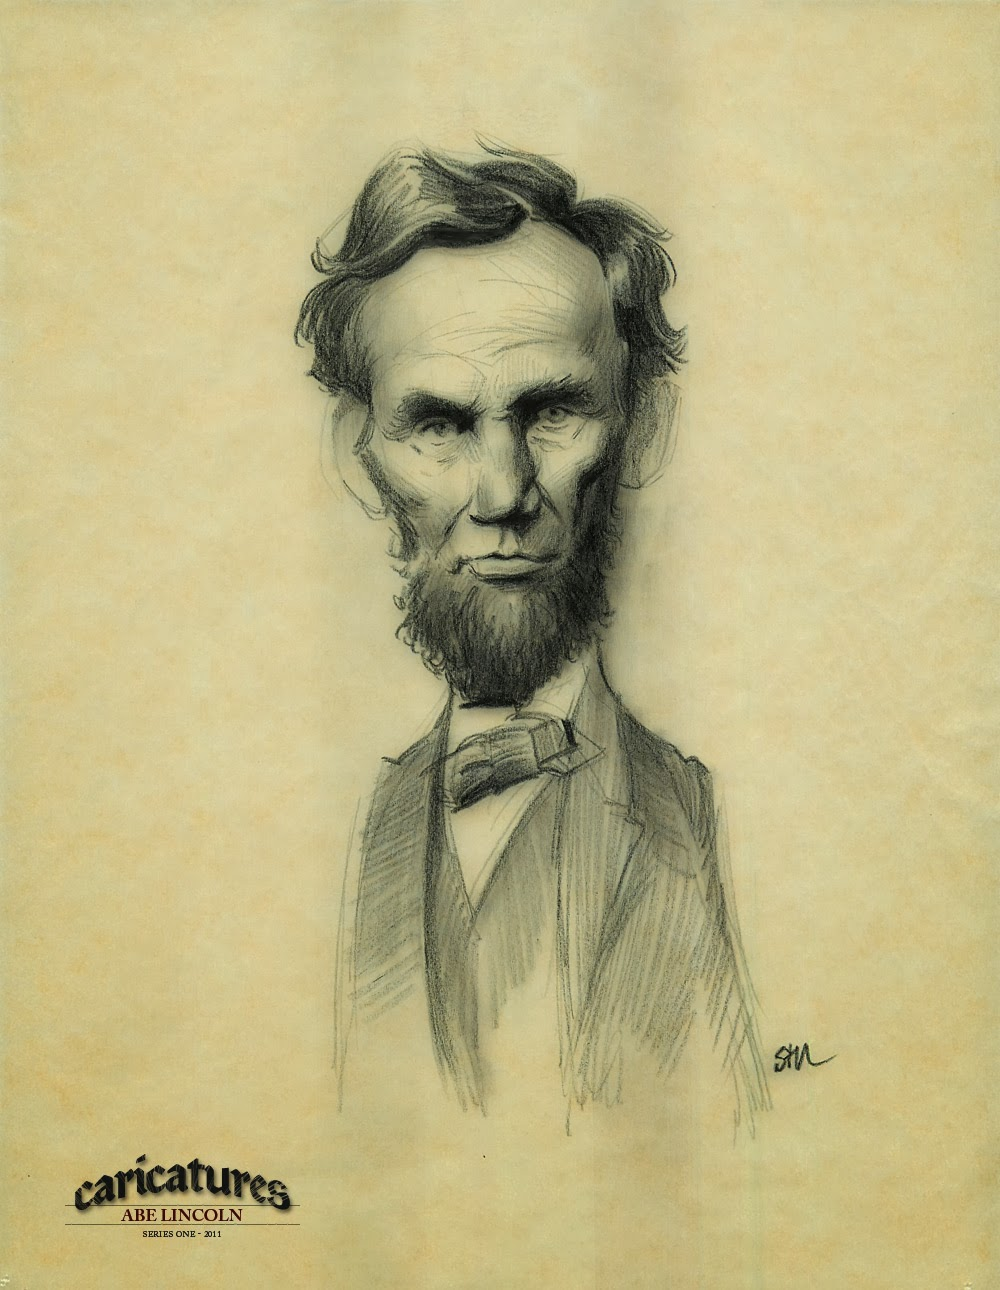 Most Interesting Facts >> Human Face: Caricature: Abraham Lincoln